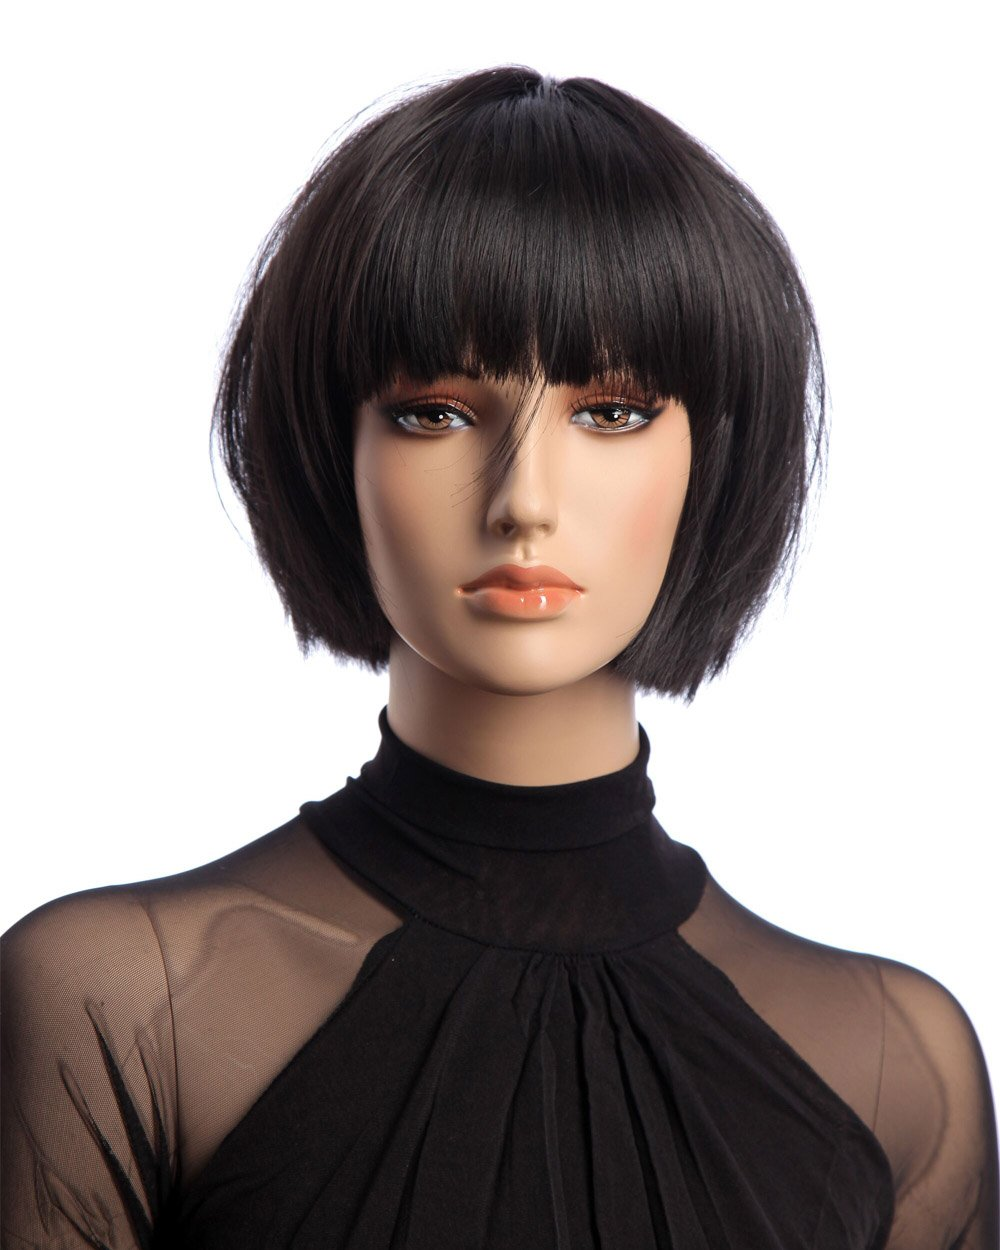 Tsnomore Trendy Dapper Short Straight White Women Bob Wig with Full Bang (Black) Qingdao